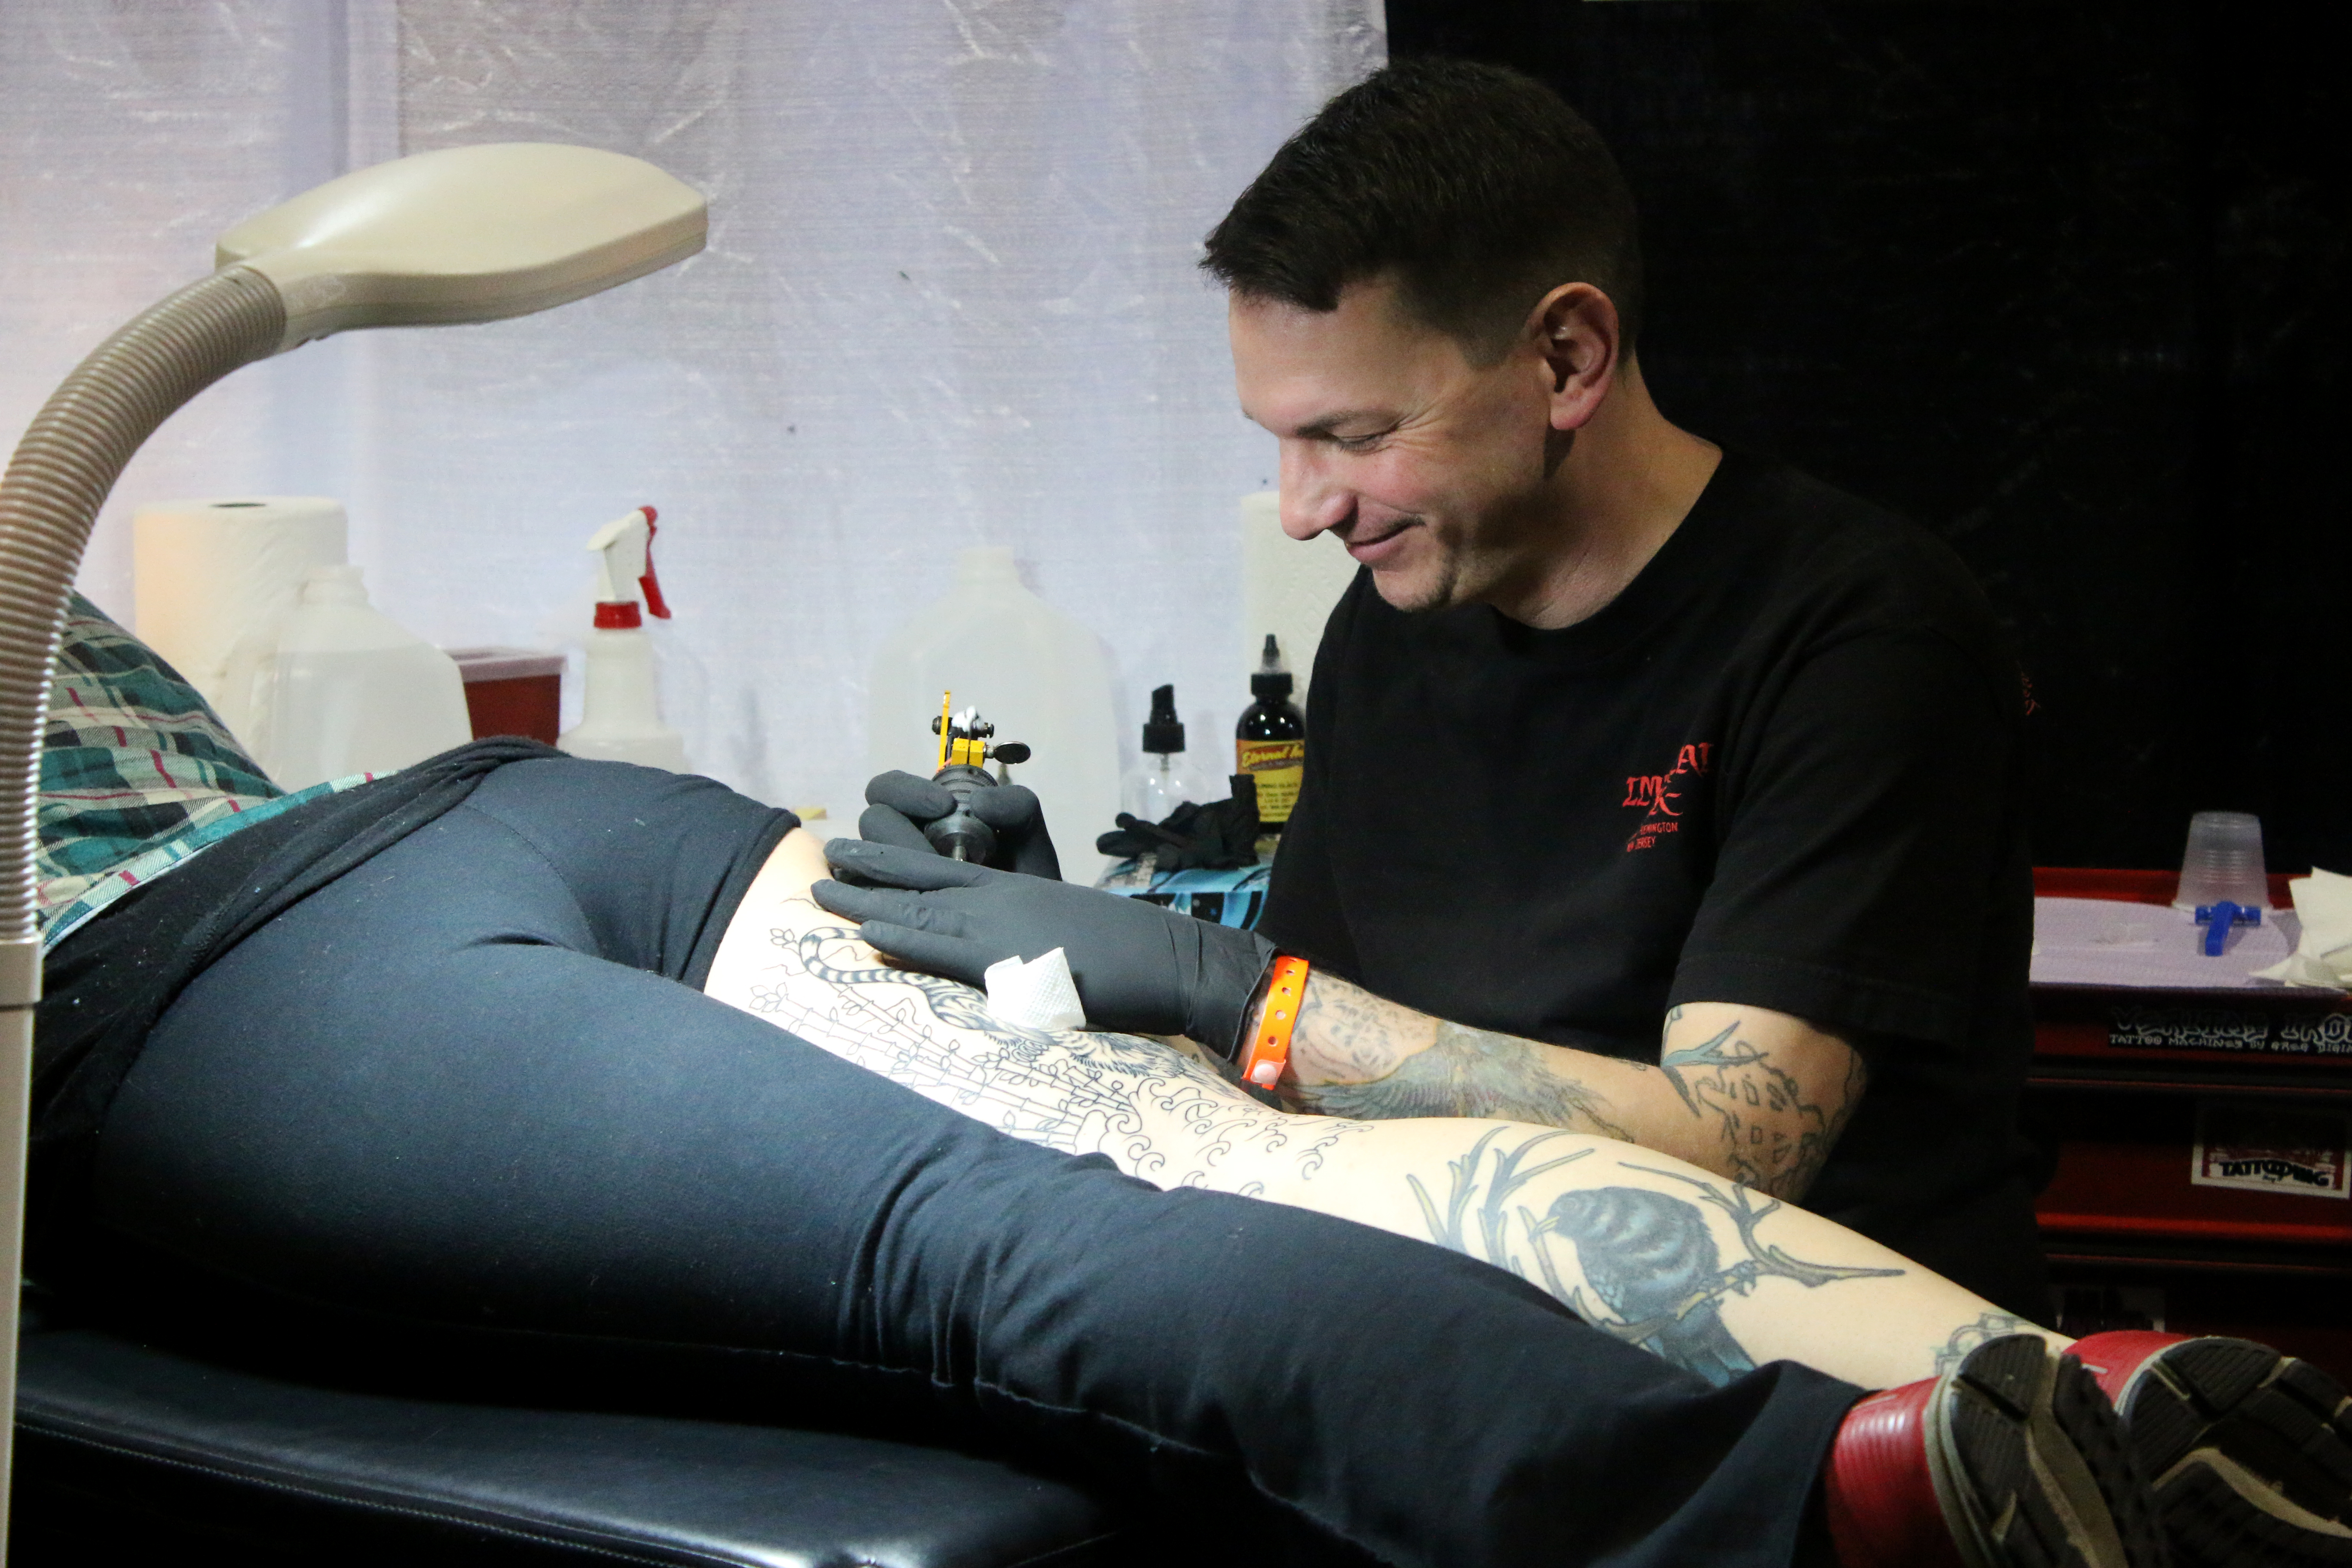 Tattoo convention comes back to philly al d a news for Tattoo convention pa